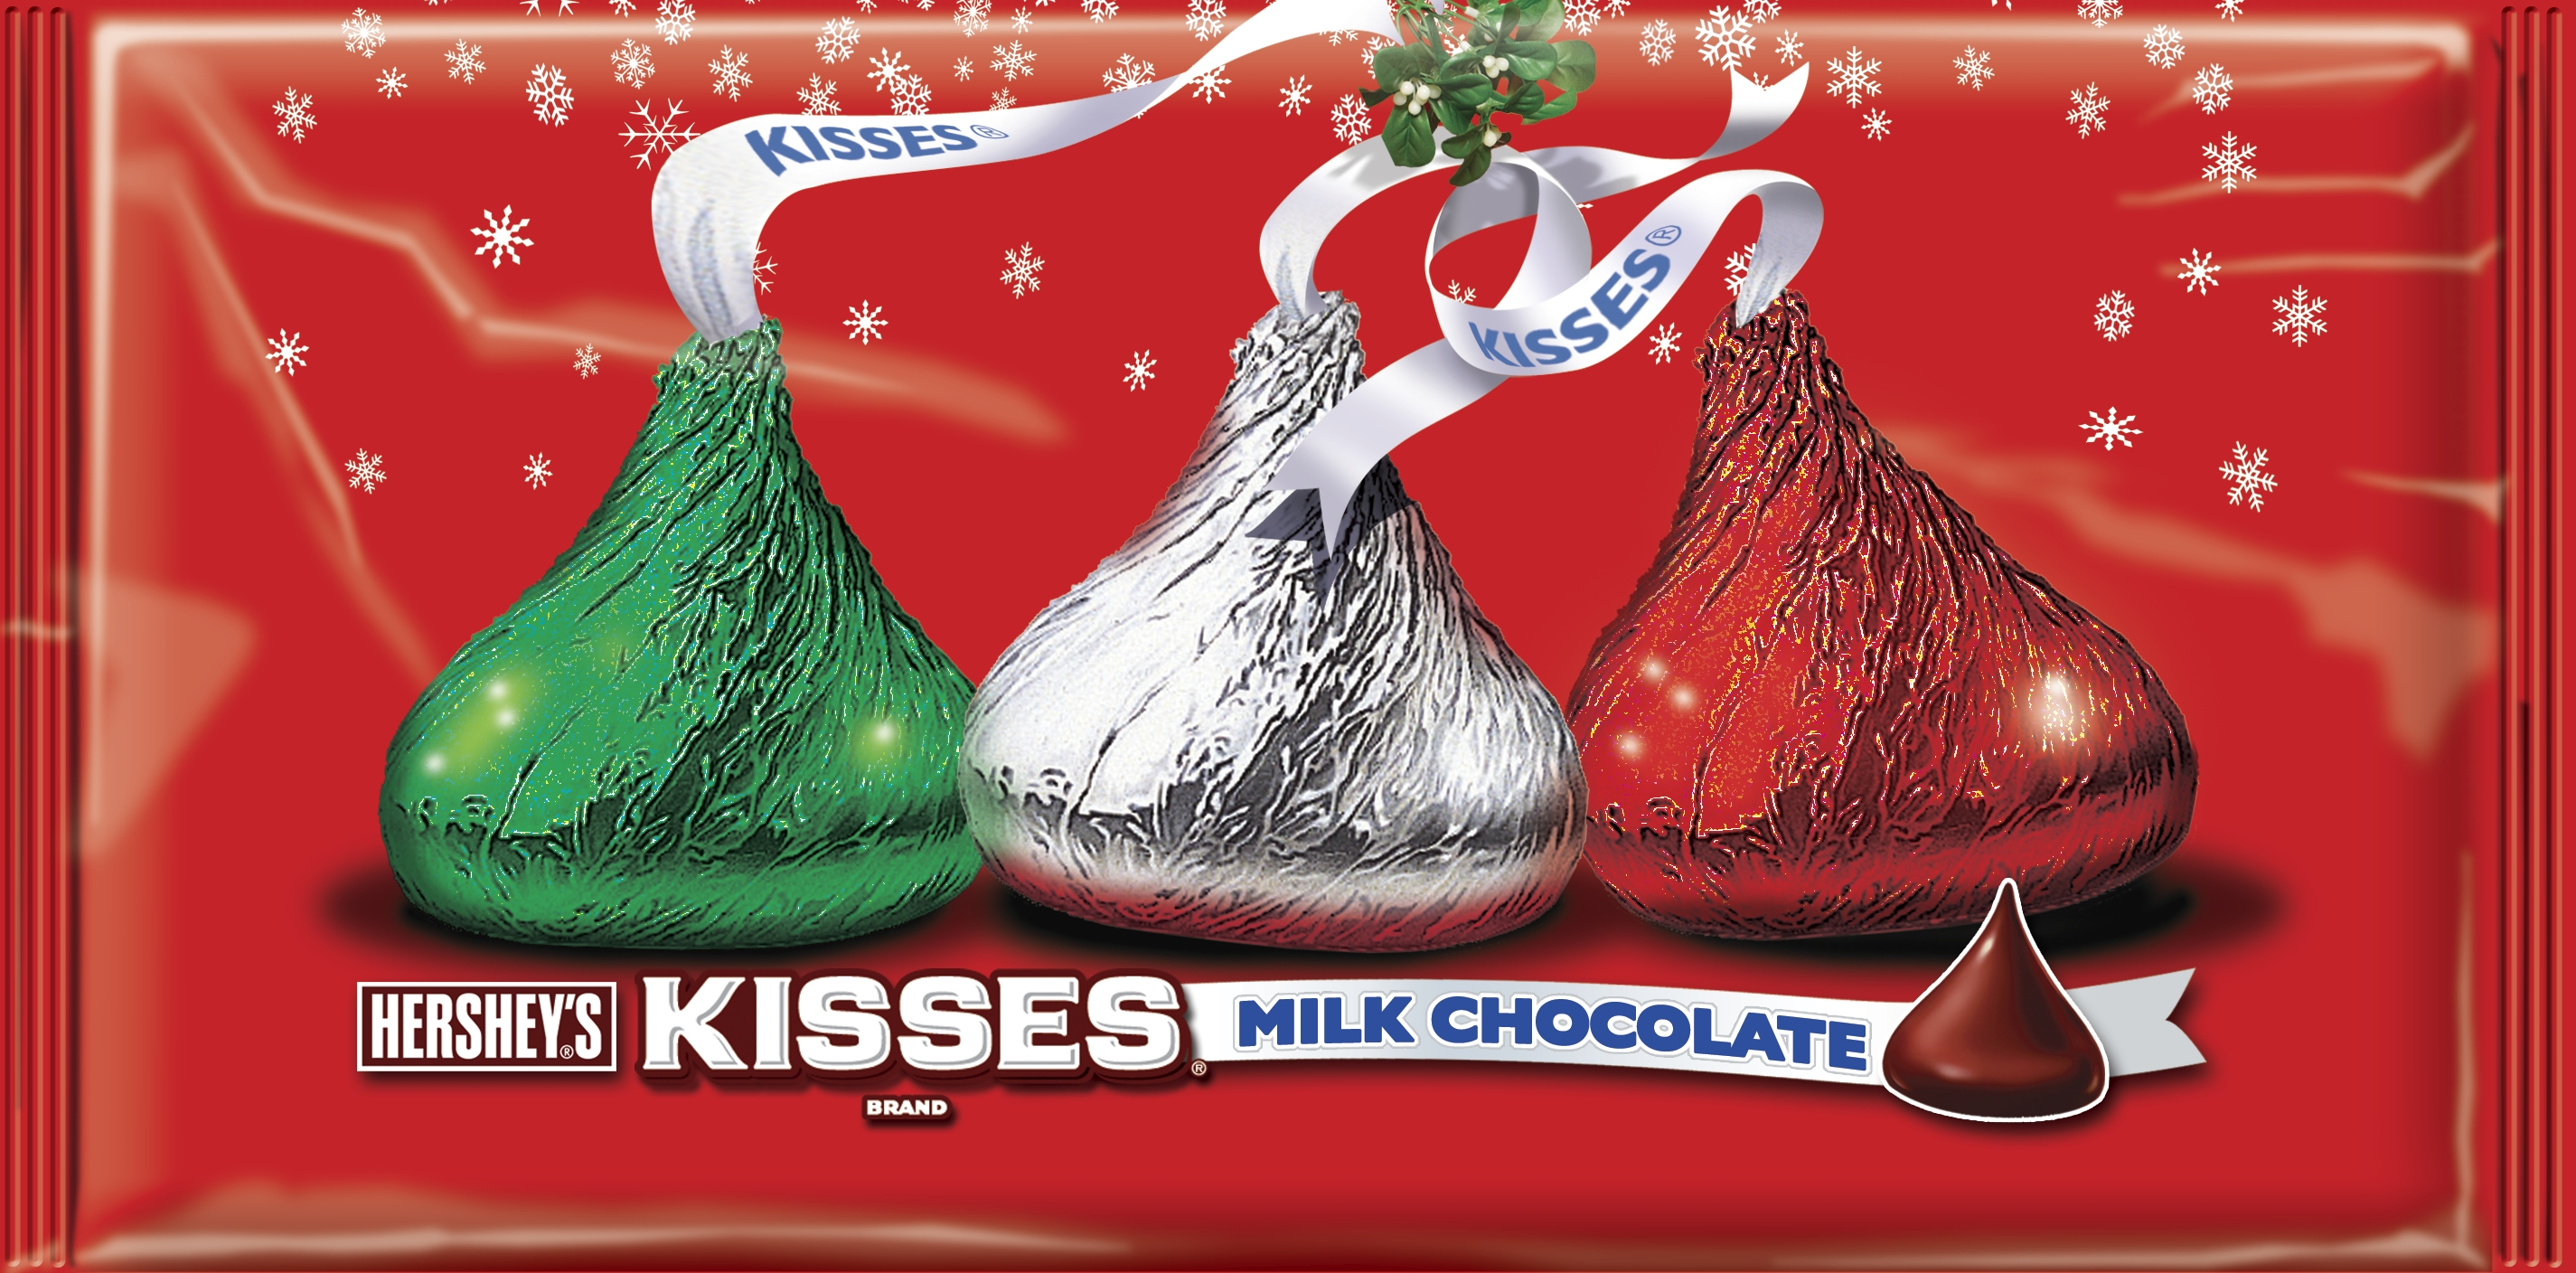 The Hershey Company Adds Wonder To Winter With Festive